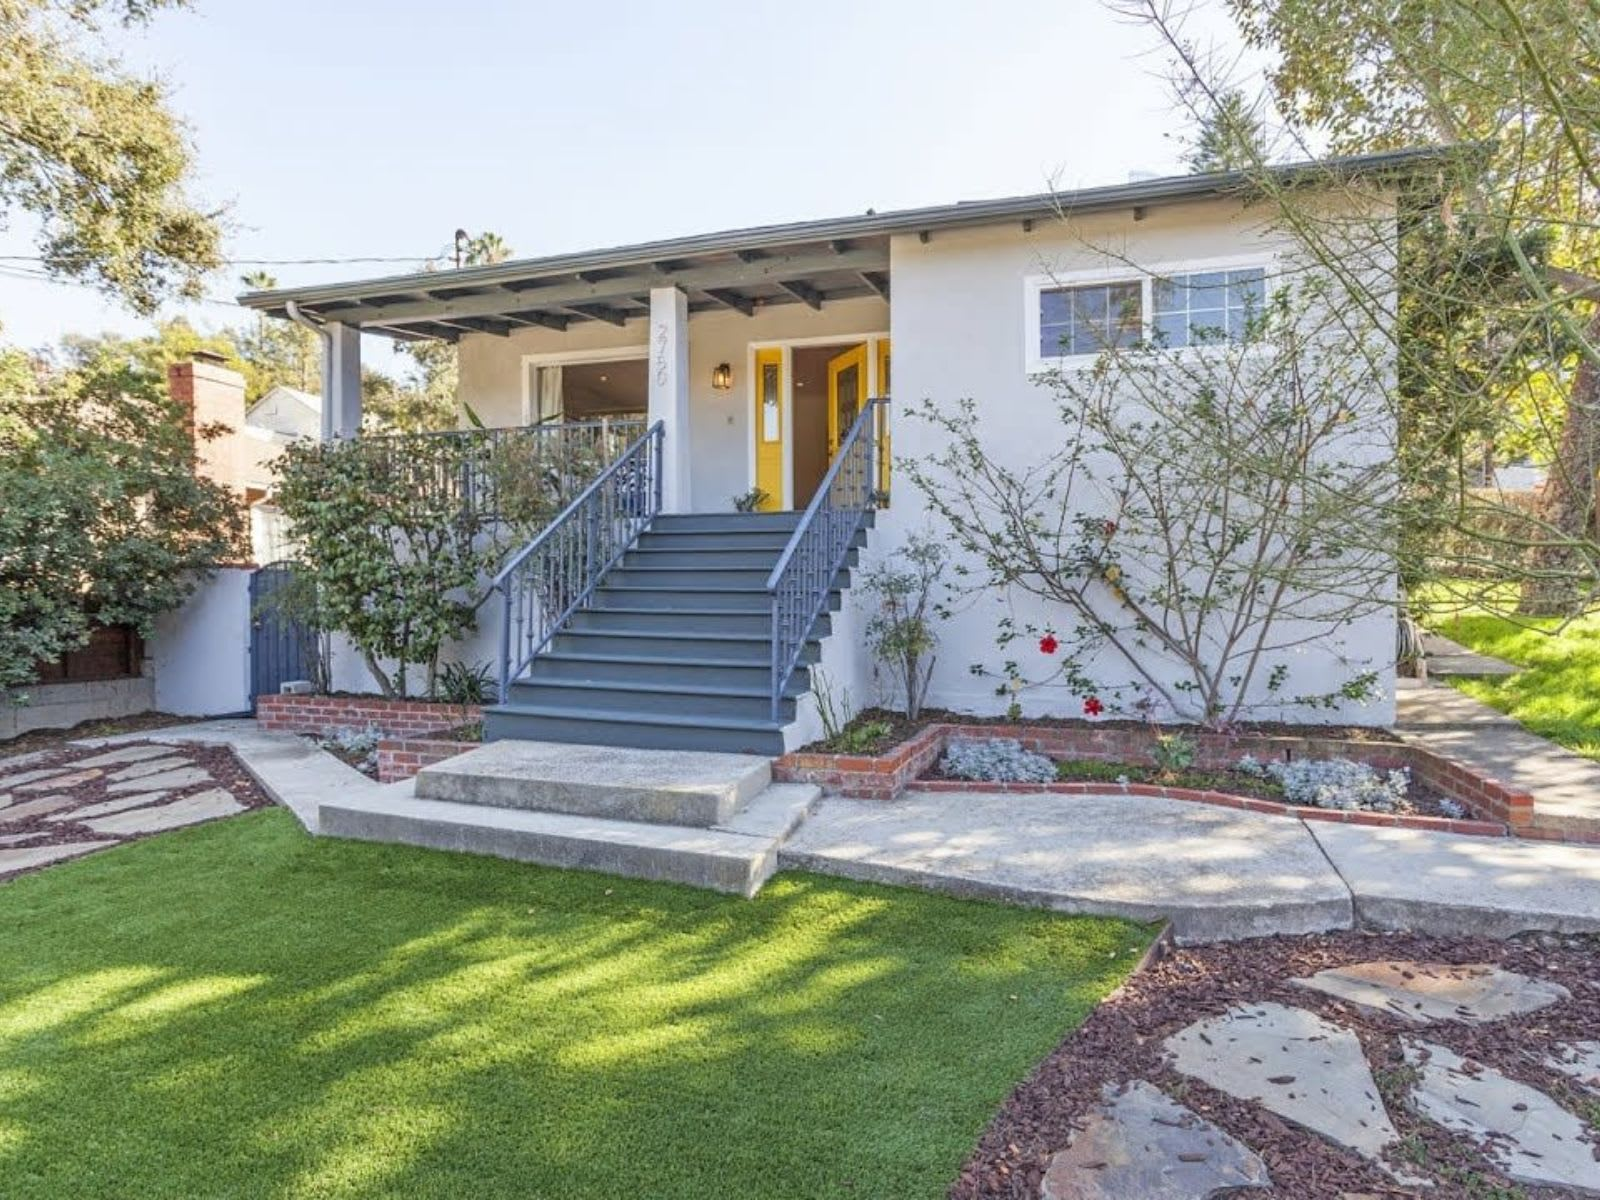 2750 El Roble Drive in Eagle Rock | Updated California Bungalow video preview